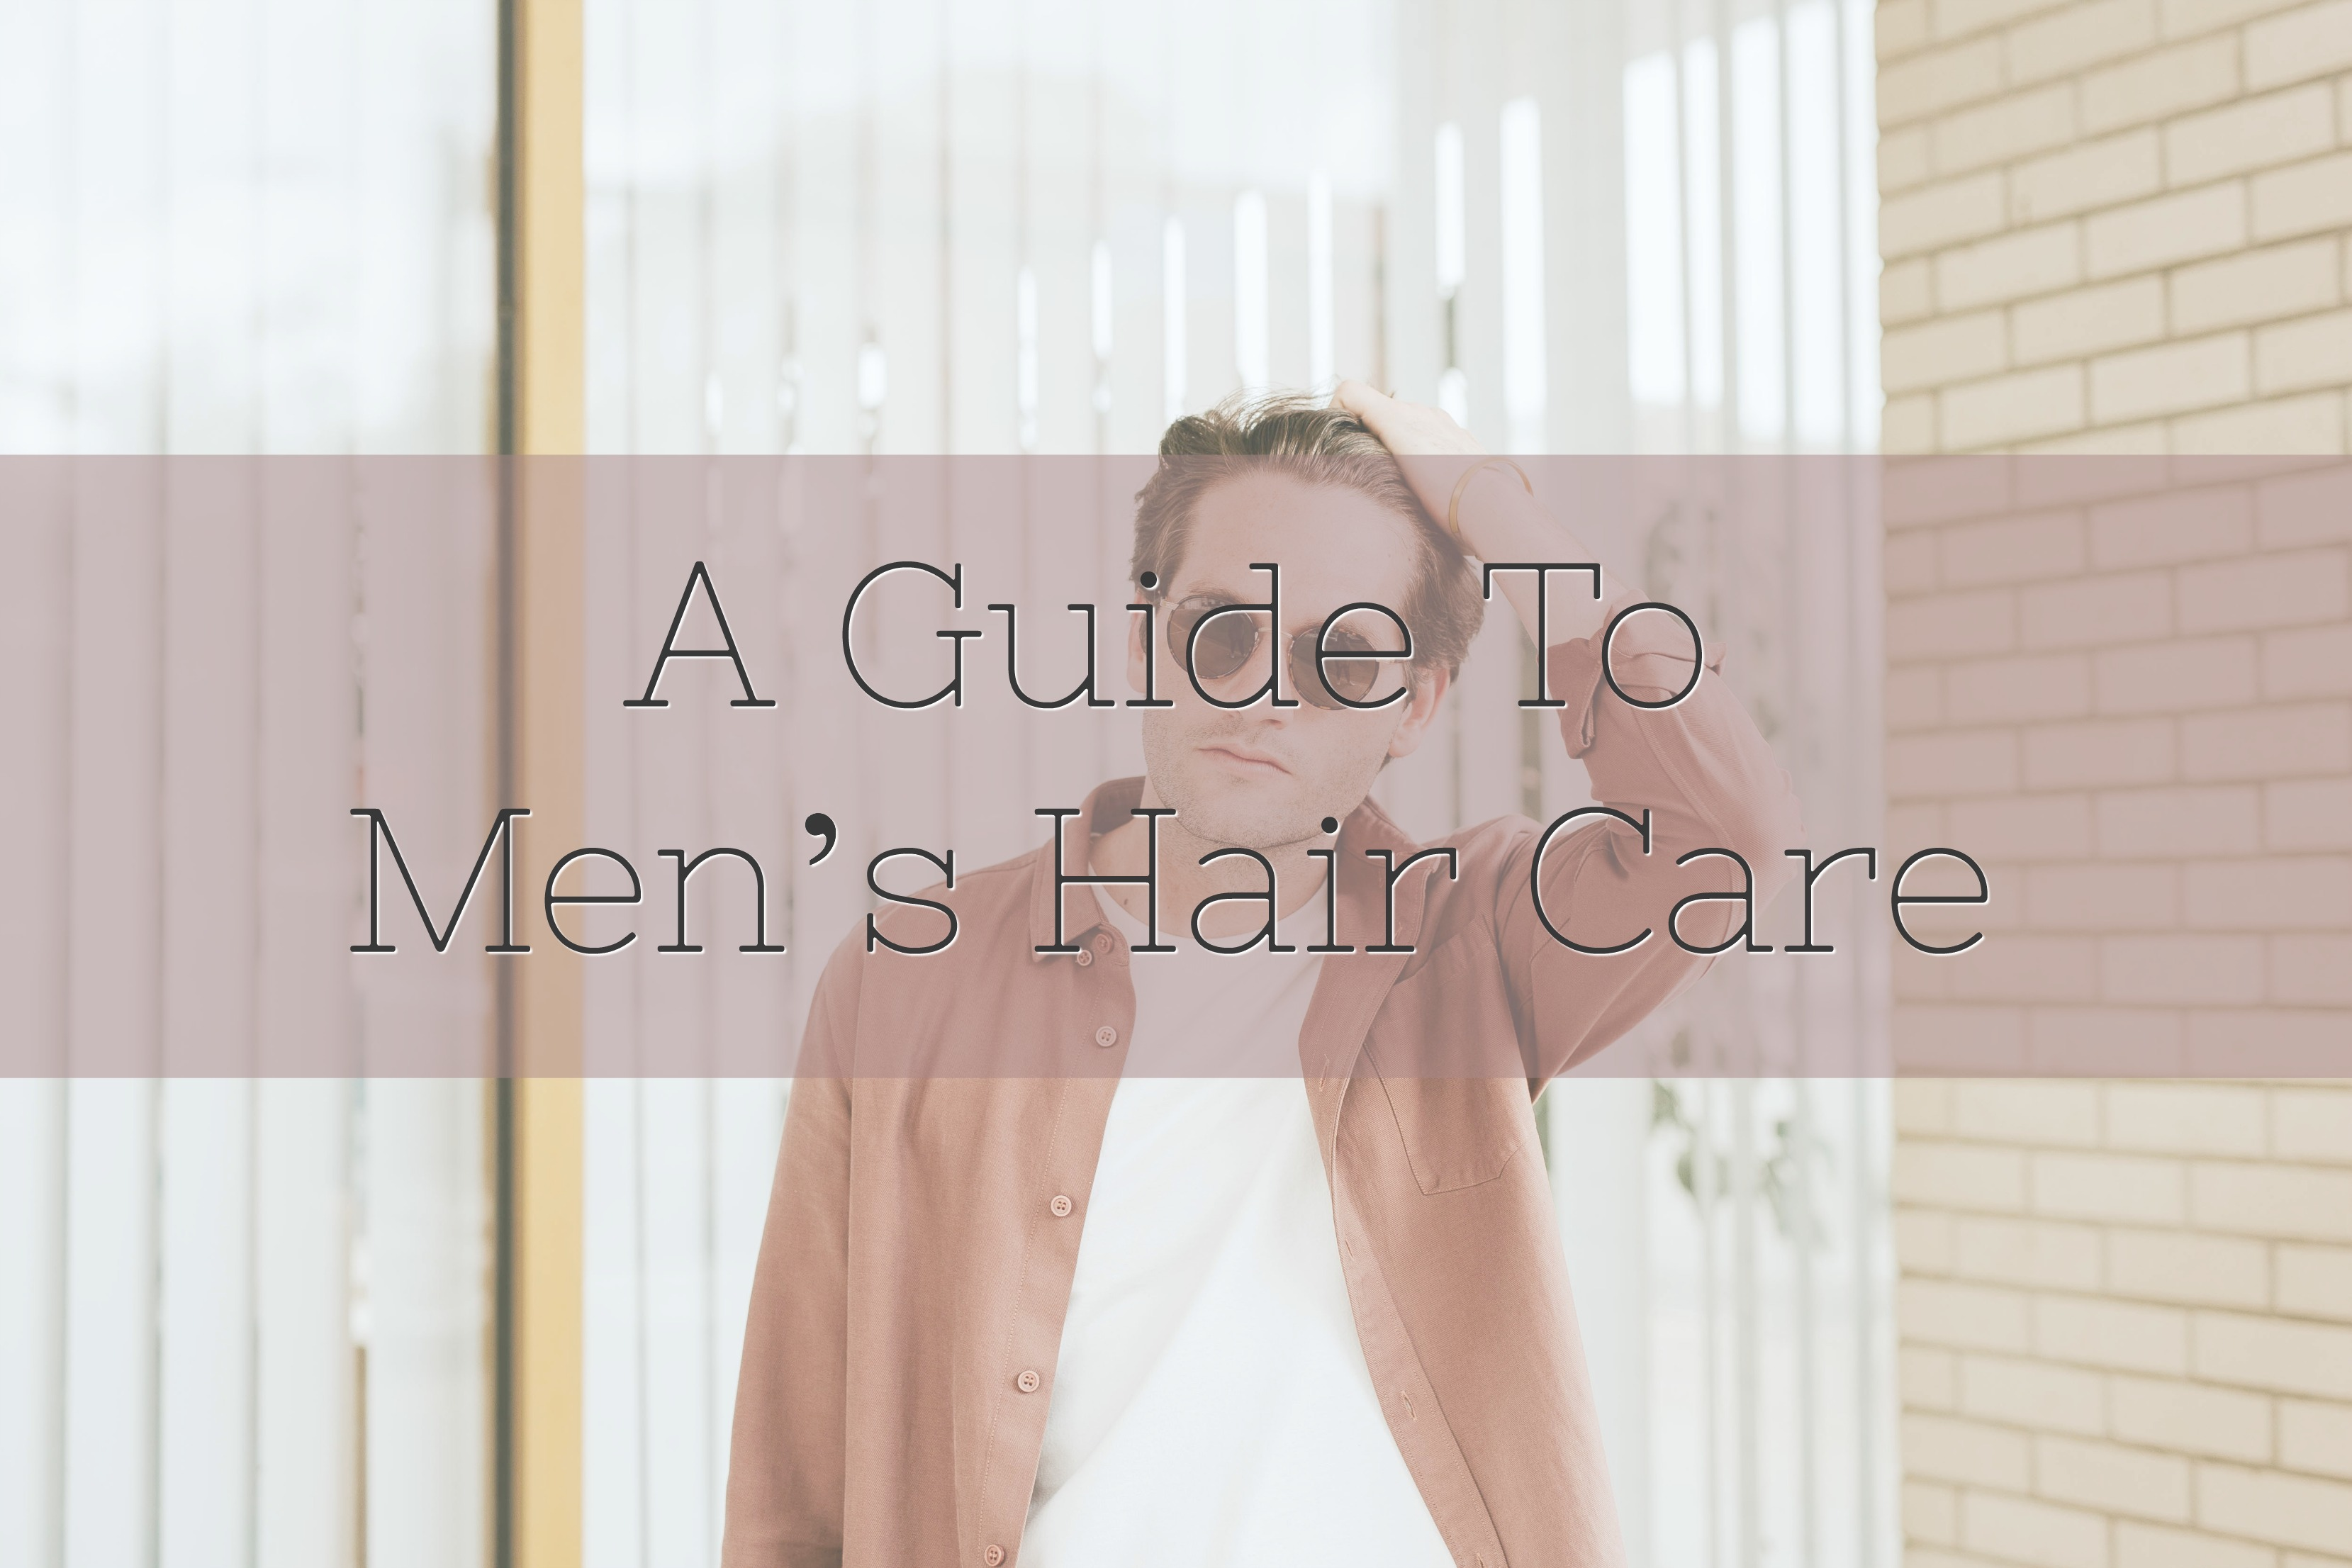 A guide to men's hair care